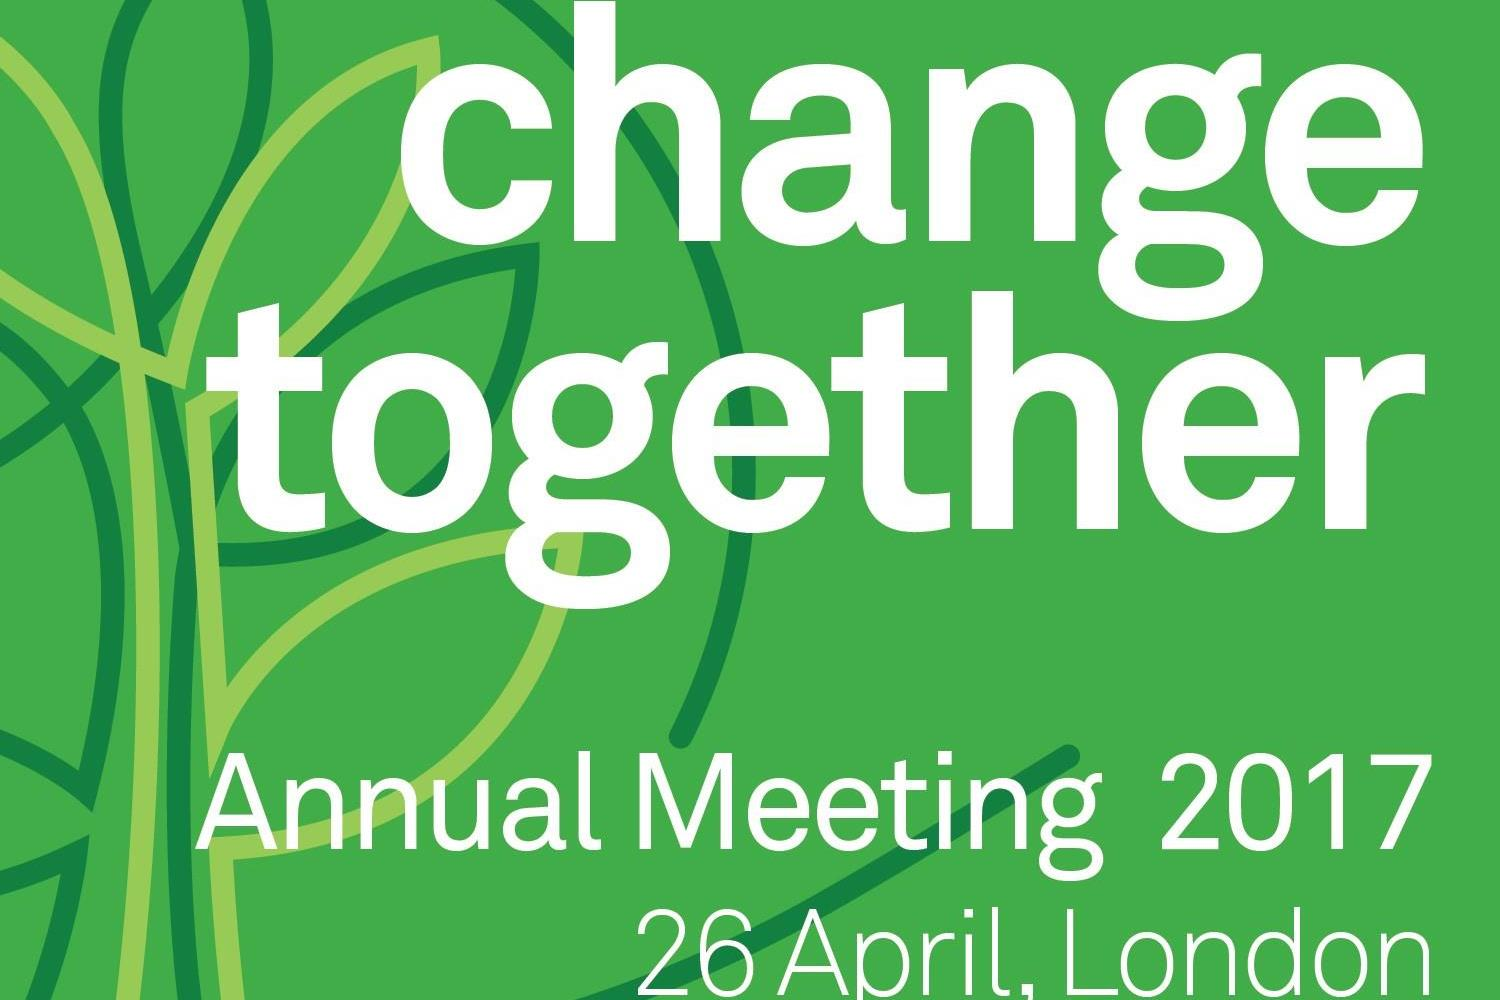 #jointhechange  - Triodos Bank Annual Meeting Social Media Leaderboard